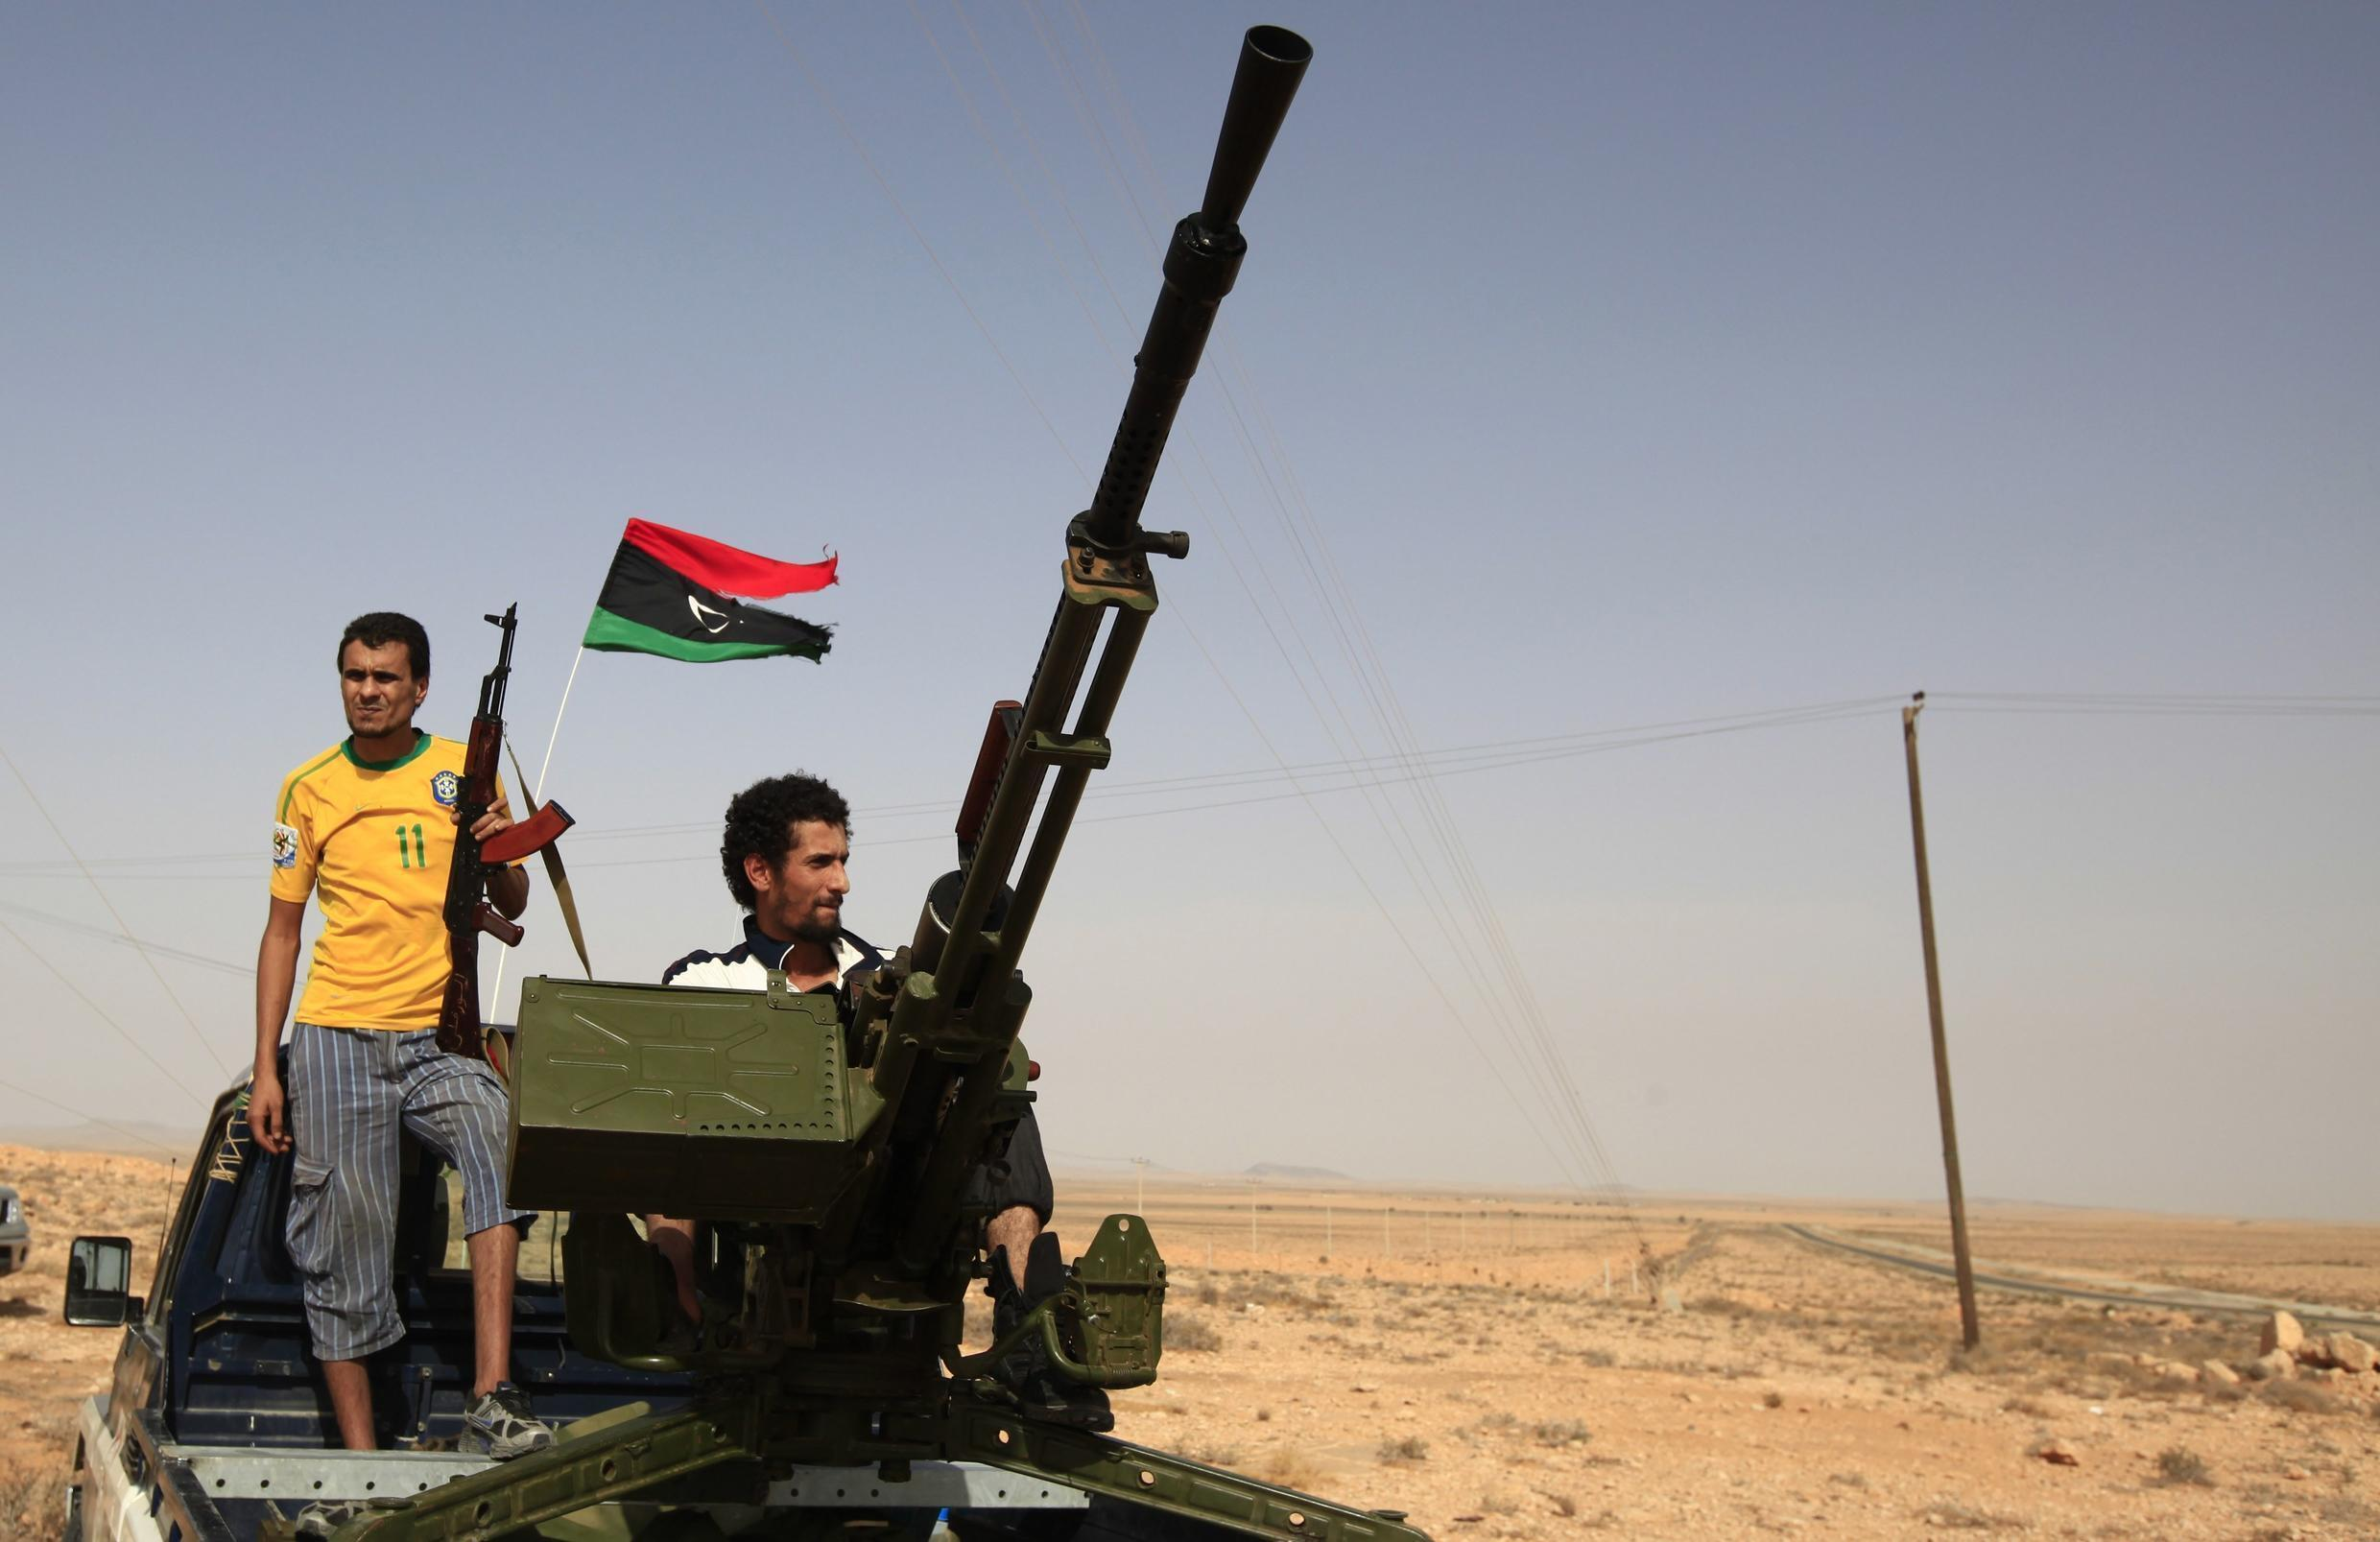 Lilbyan fighters wait in the outskirts of the town of Bani Walid